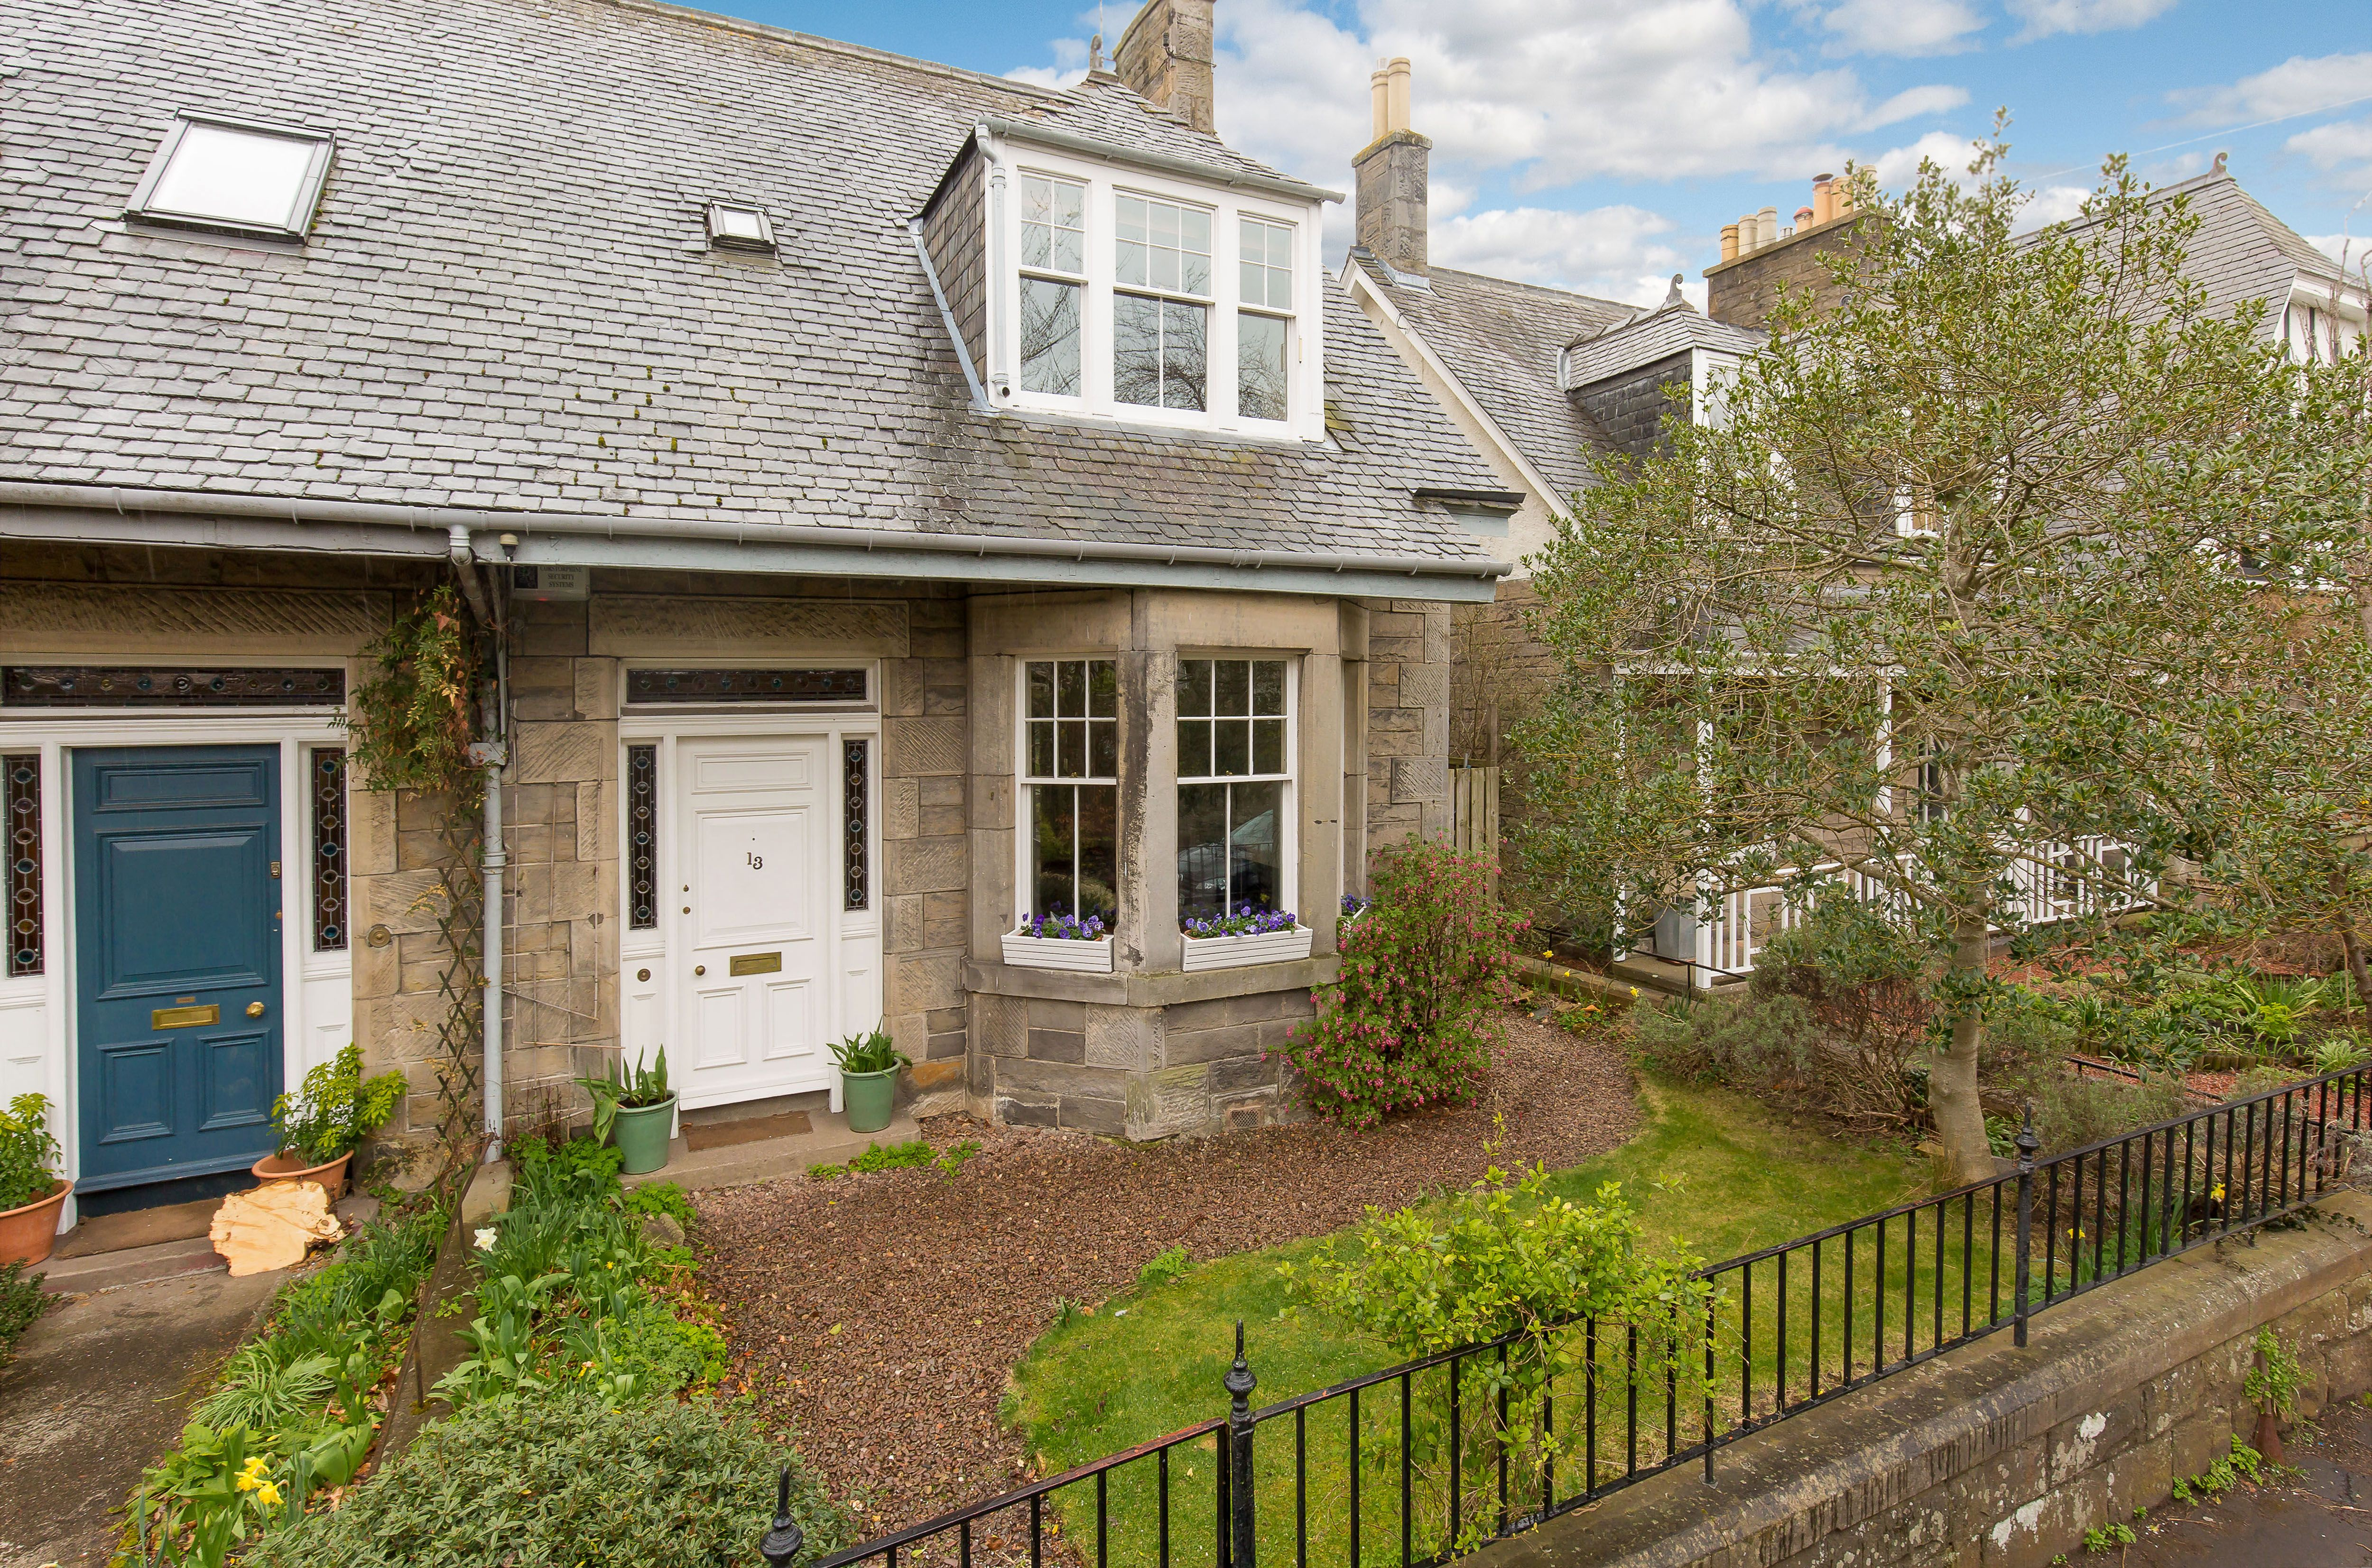 13 Cramond Glebe Road, Edinburgh